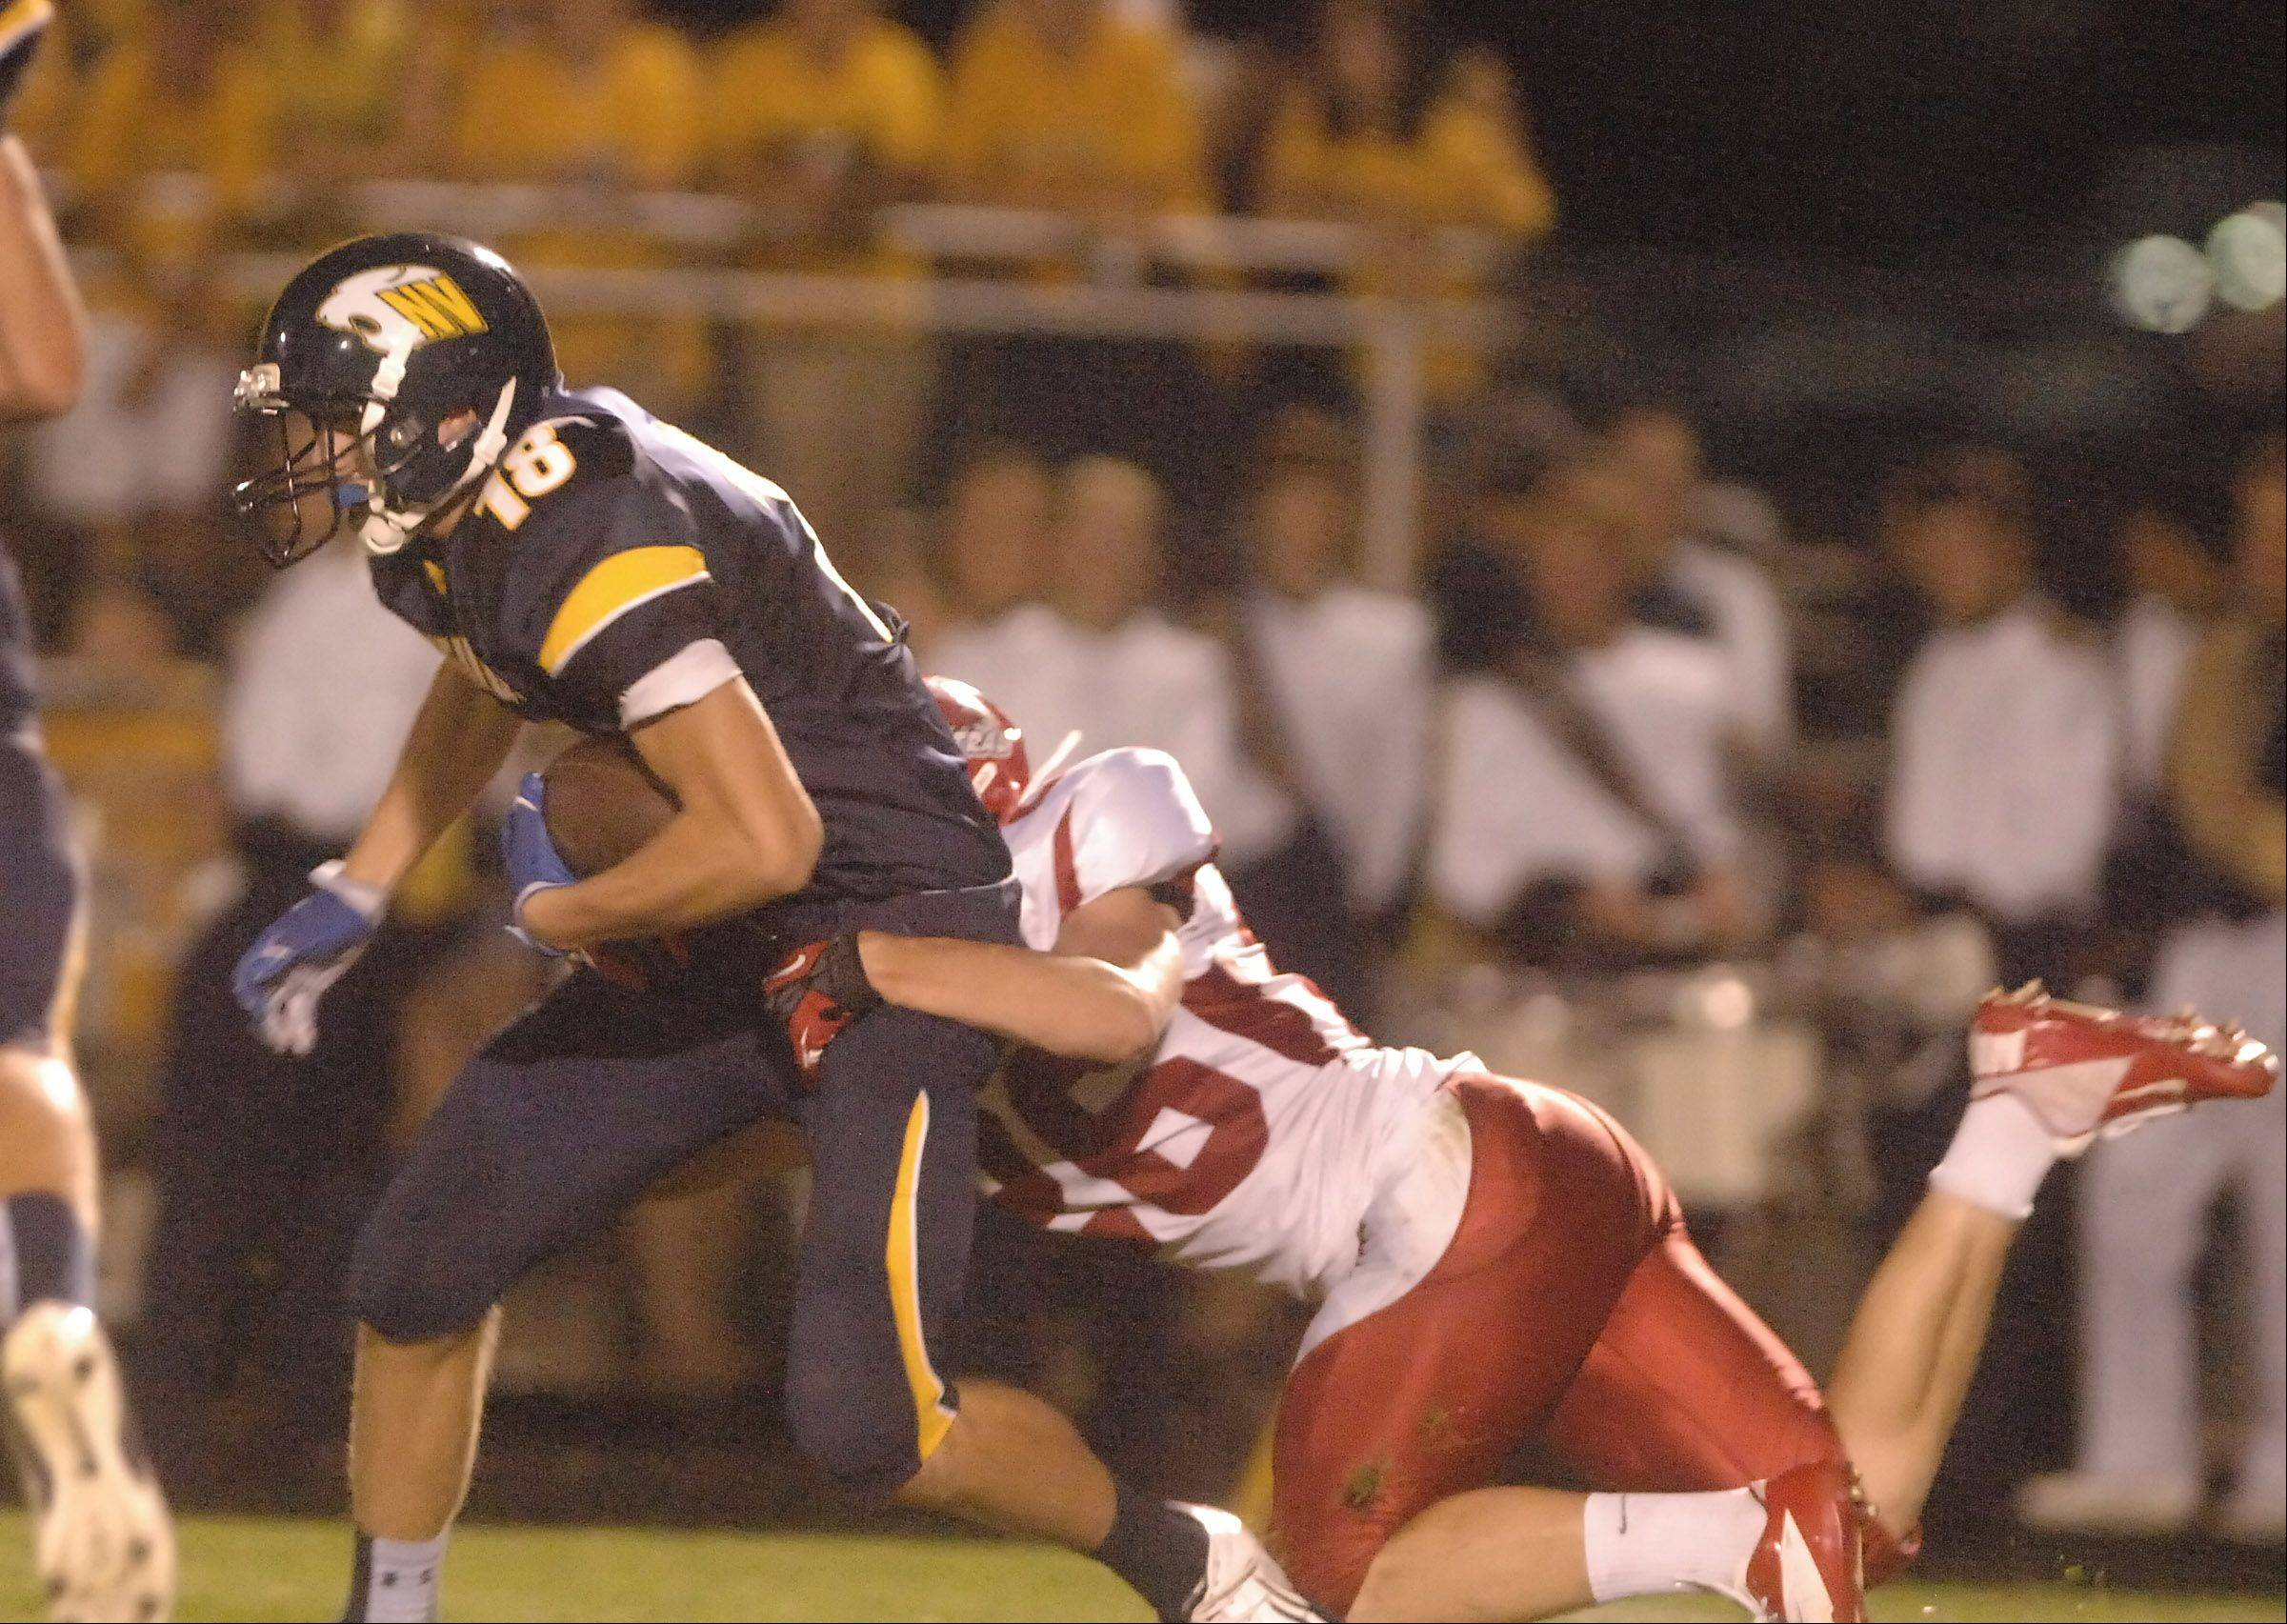 Paul Michna/pmichna@dailyherald.com Ryan Kuhl of Neuqua is pulled down by Kevin Nowak of Naperville Central during the Naperville Central at Neuqua Valley football game Friday.